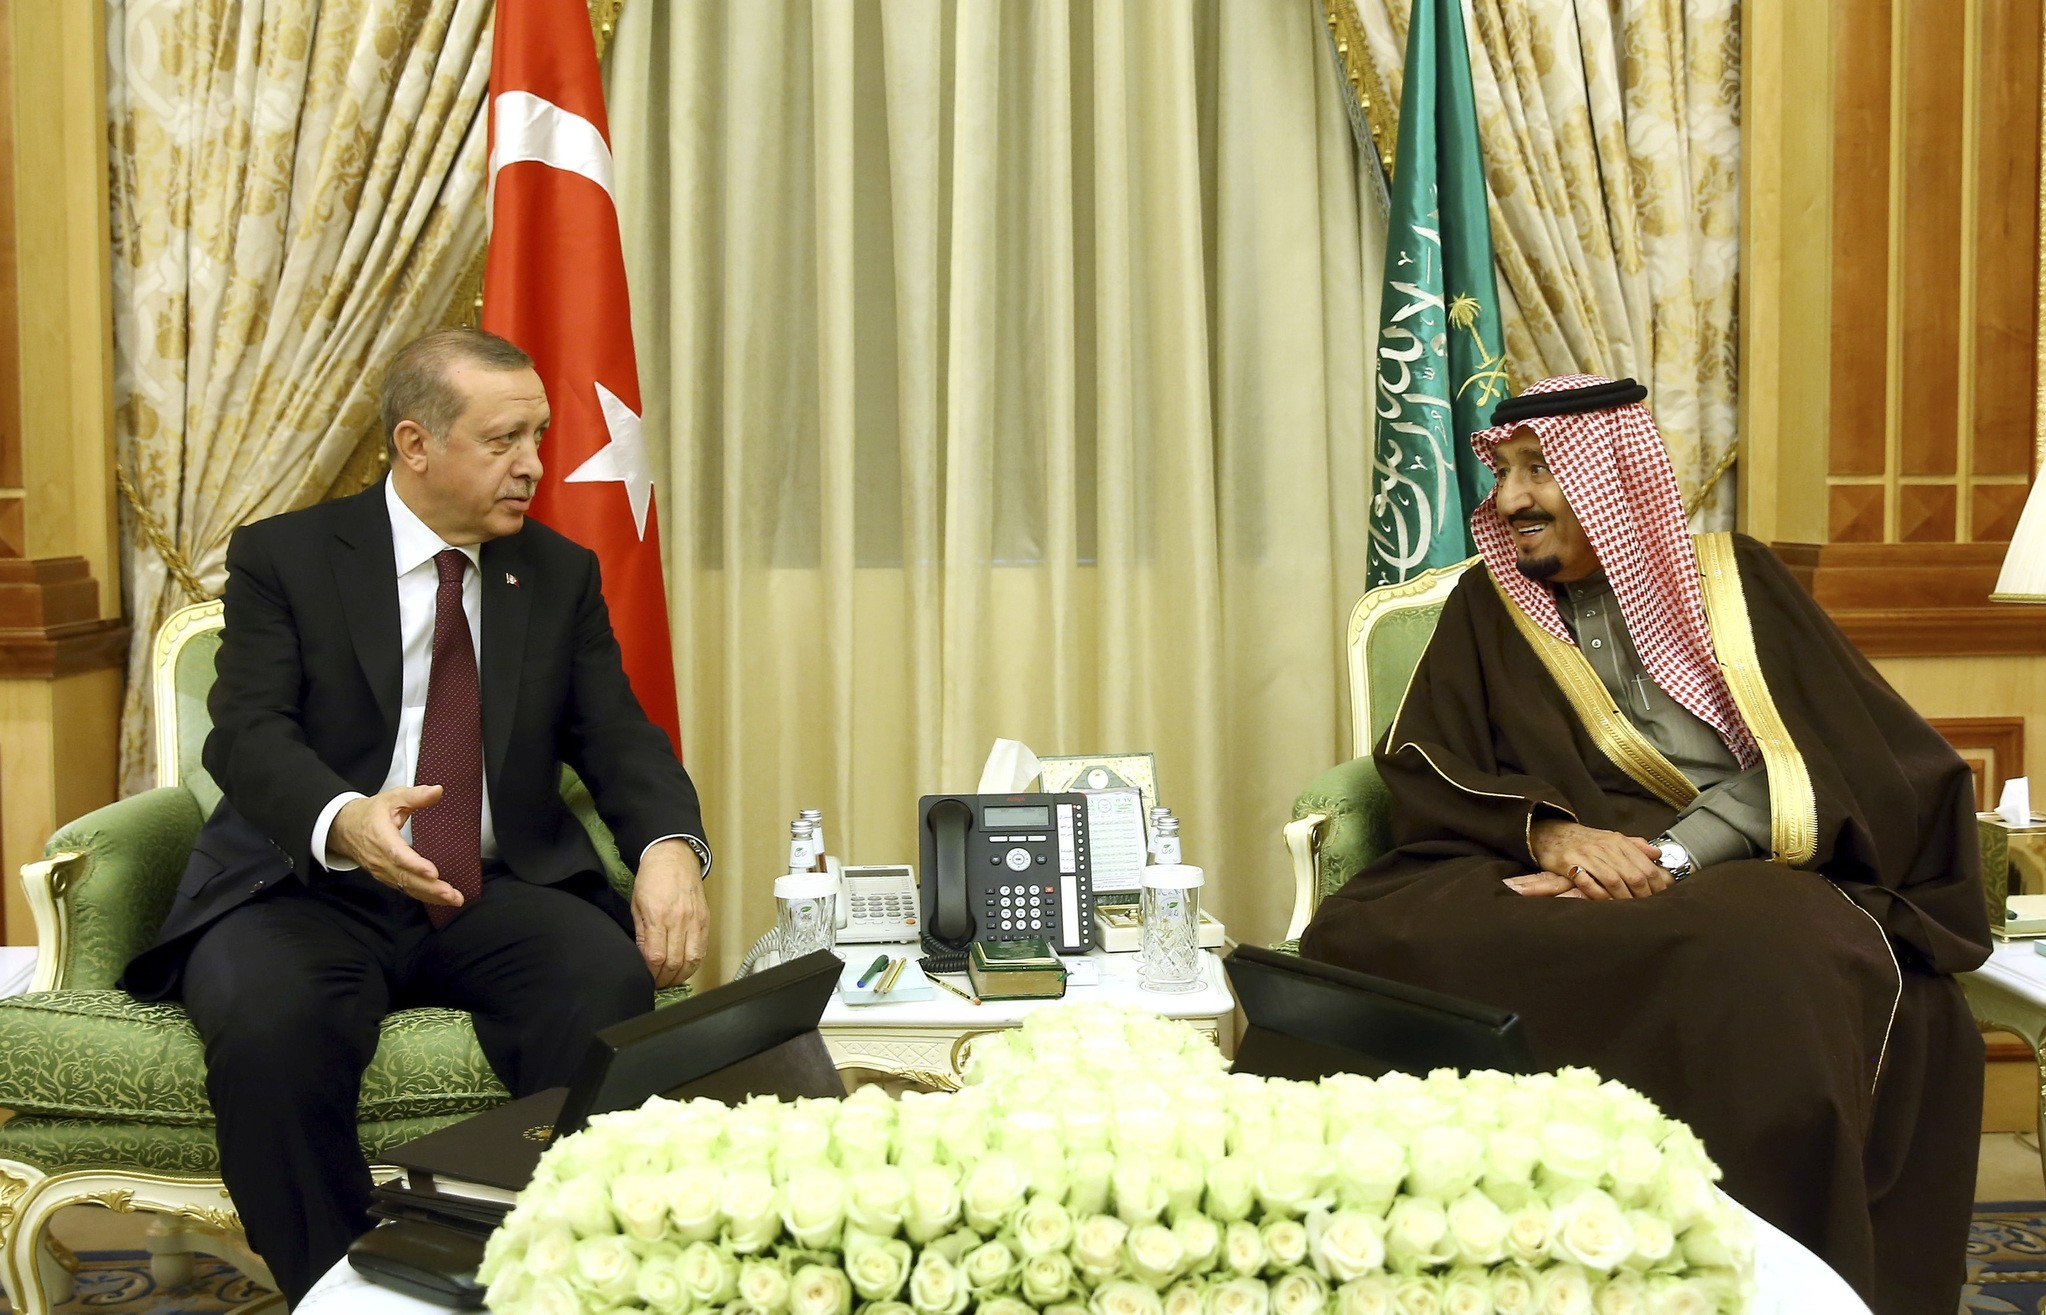 President Erdou011fan met with Saudi King Salman in Riyadh Tuesday to discuss regional issues as well as the future of economic partnership.